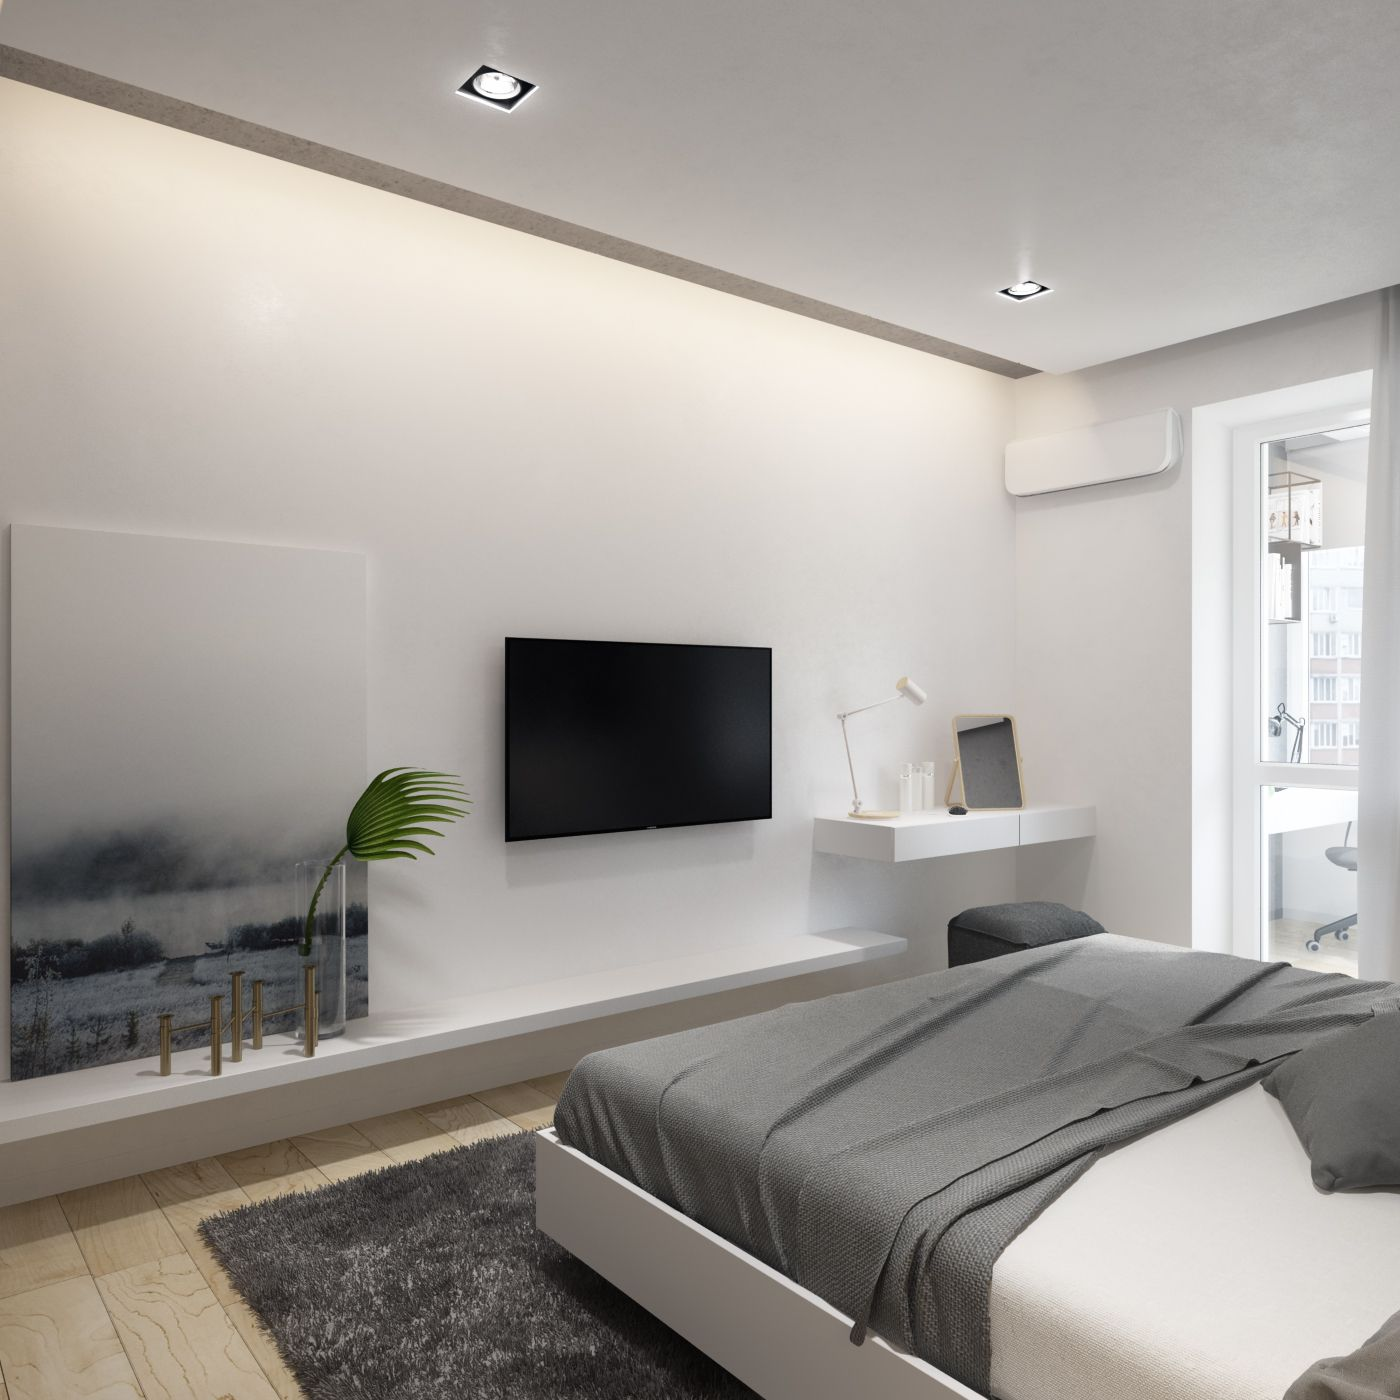 Modern 1 Bedroom Apartment: One Bedroom Apartment, Contemporary